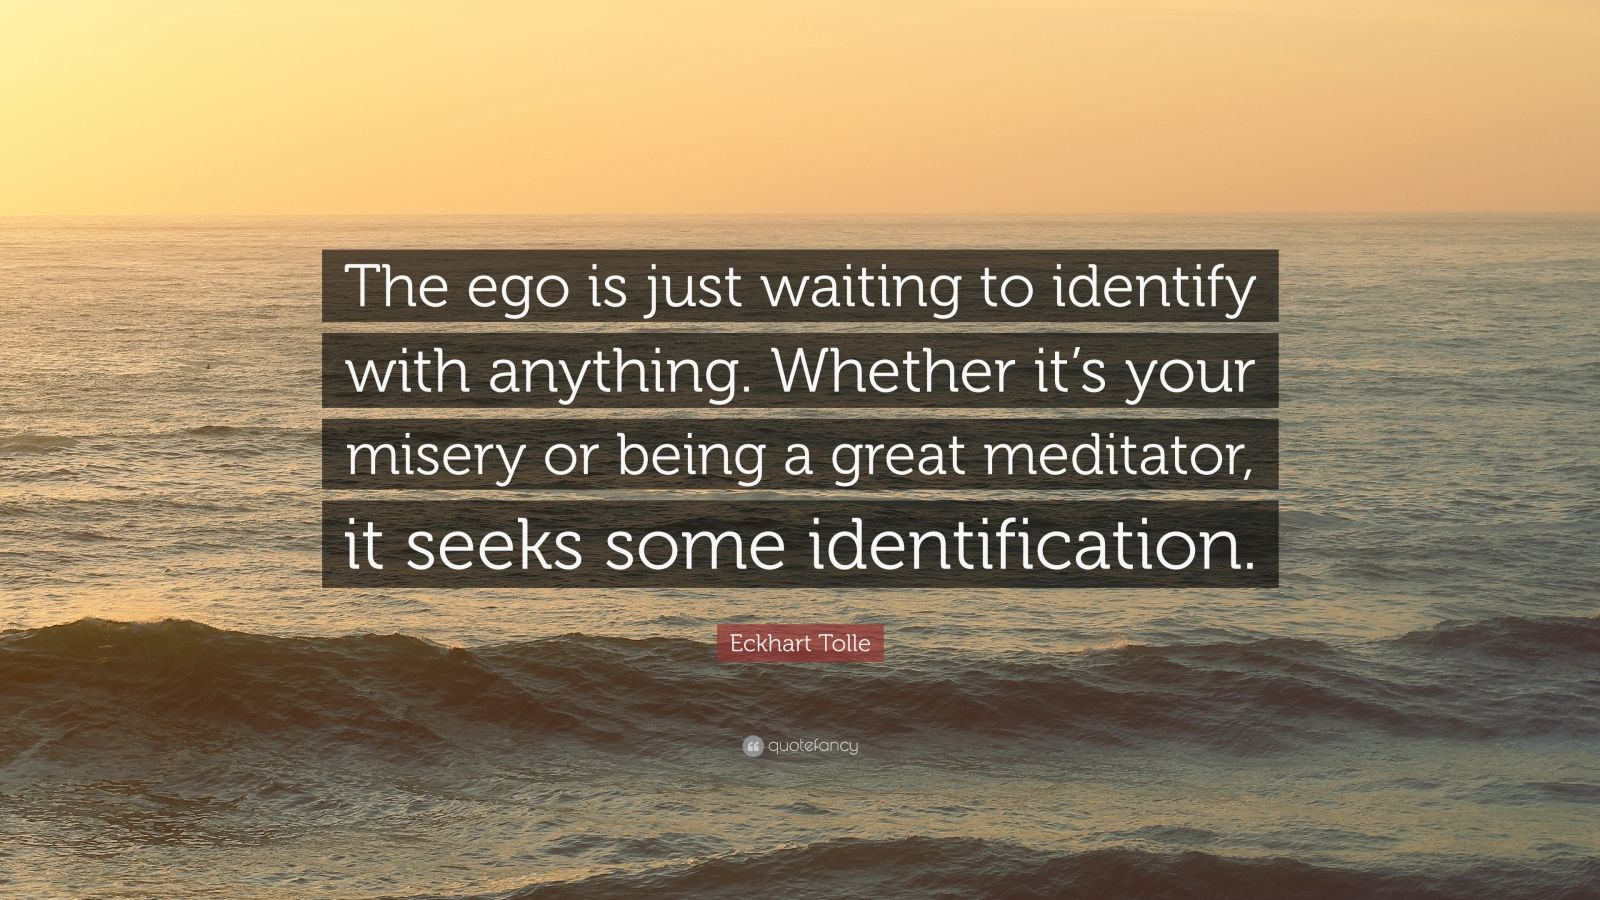 """Eckhart Tolle Quote: """"The ego is just waiting to identify with anything. Whether it's your misery or being a great meditator, it seeks some identification."""""""